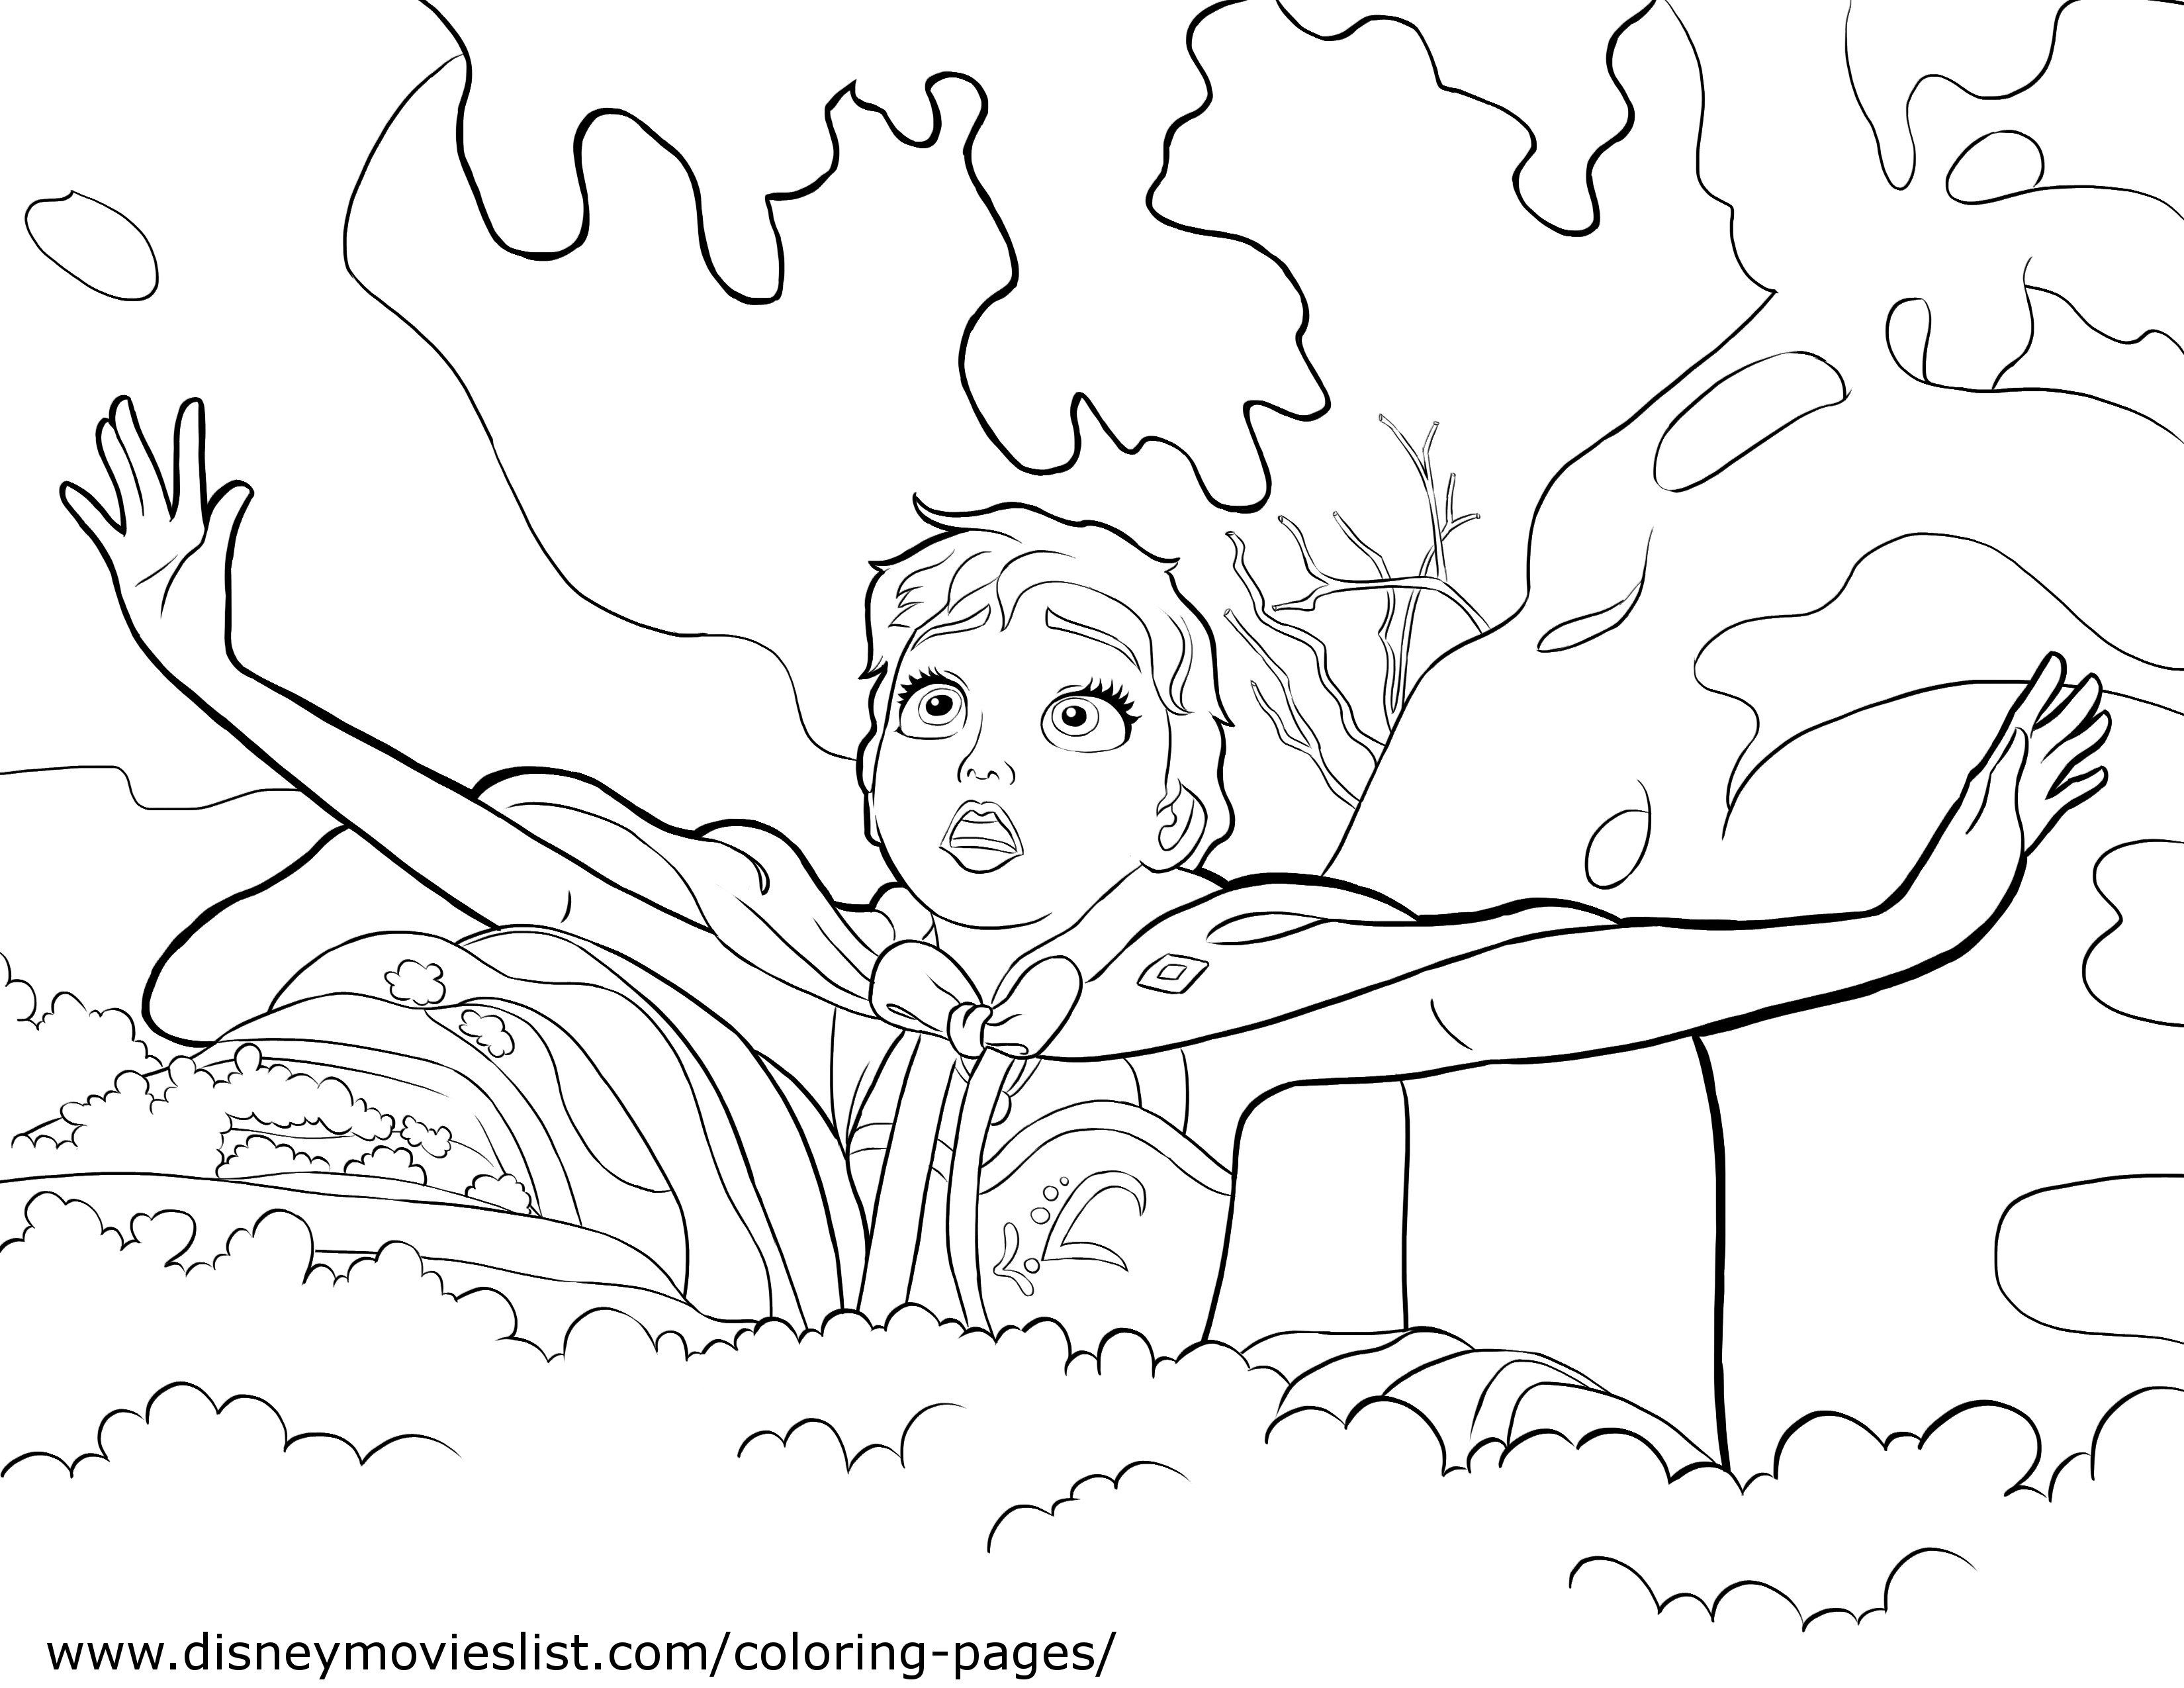 Disney\'s Frozen Olaf Coloring Page | kids craft | Pinterest | Disney ...